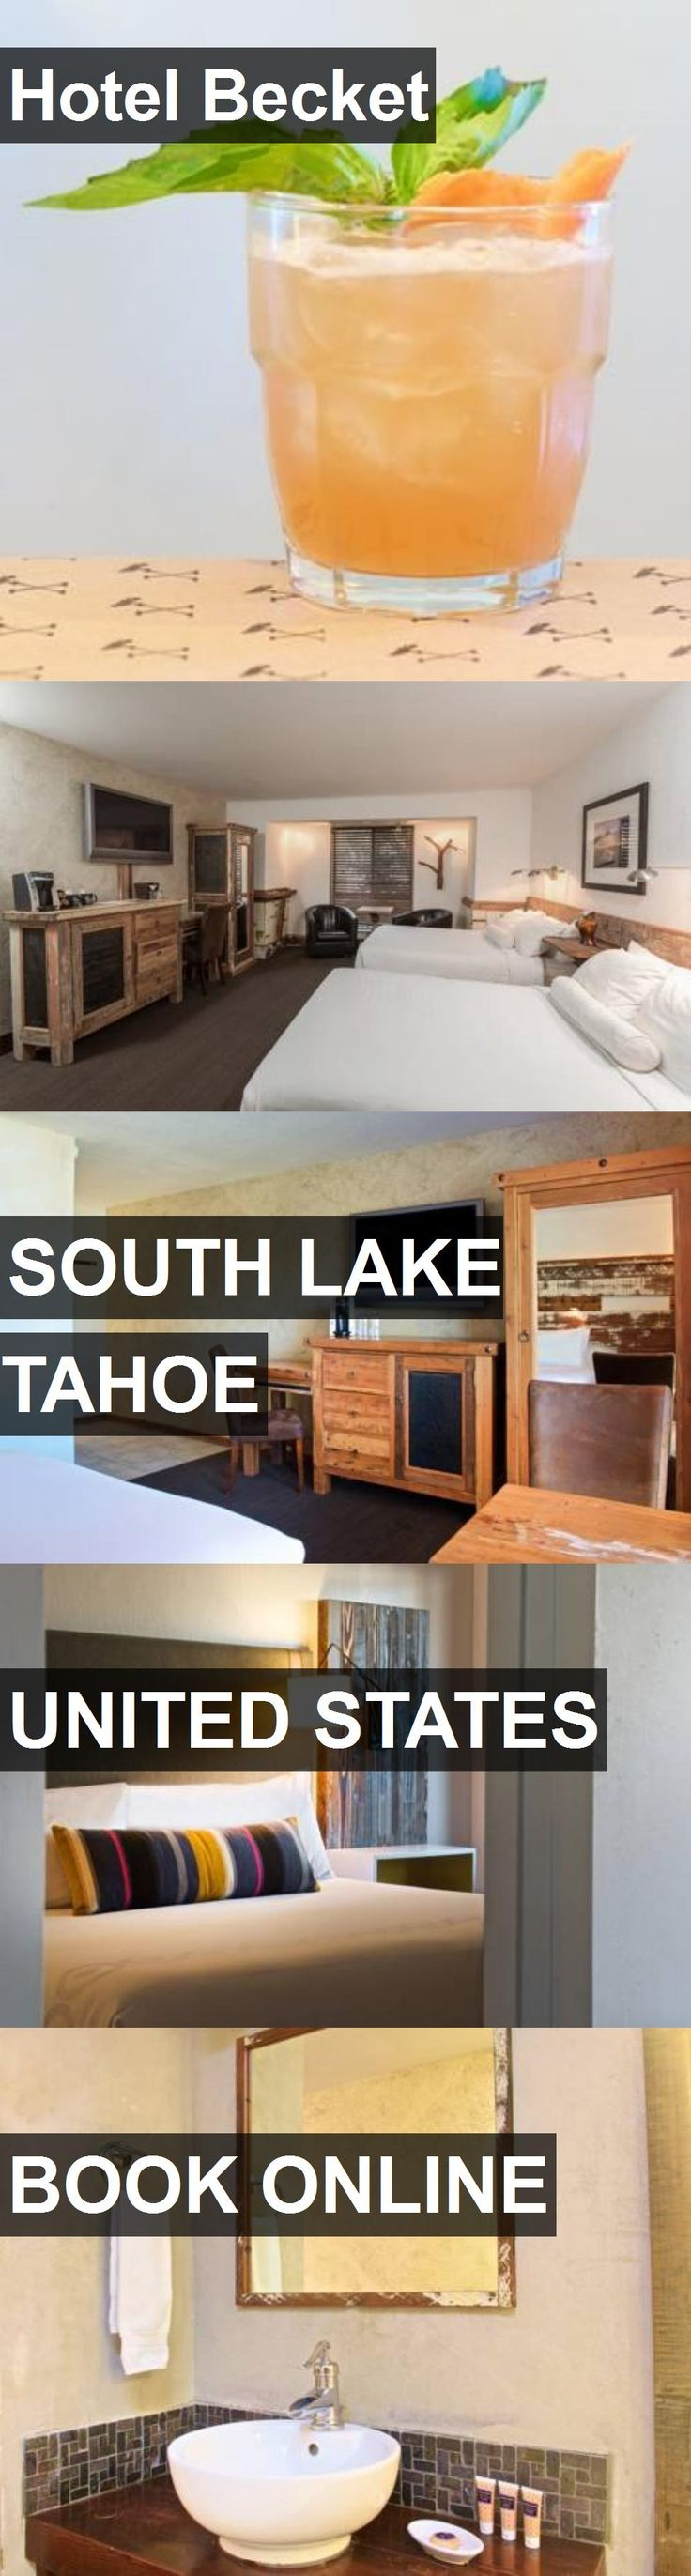 Hotel Becket in South Lake Tahoe, United States. For more information, photos, reviews and best prices please follow the link. #UnitedStates #SouthLakeTahoe #travel #vacation #hotel